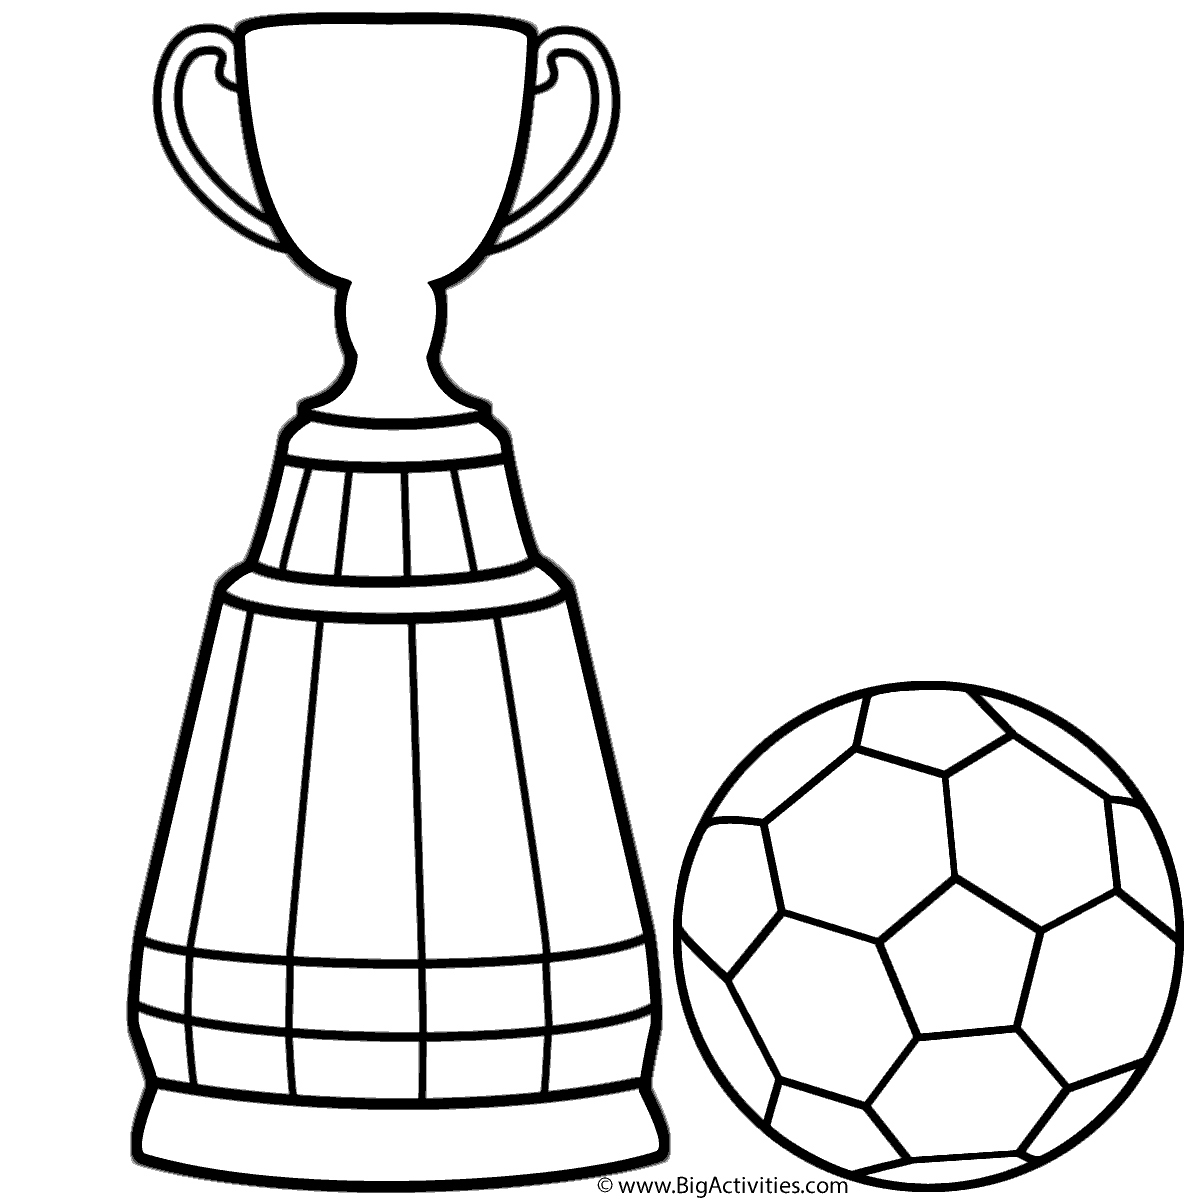 1200x1200 Soccer Ball Coloring Page Elegant World Cup Trophy With Soccer